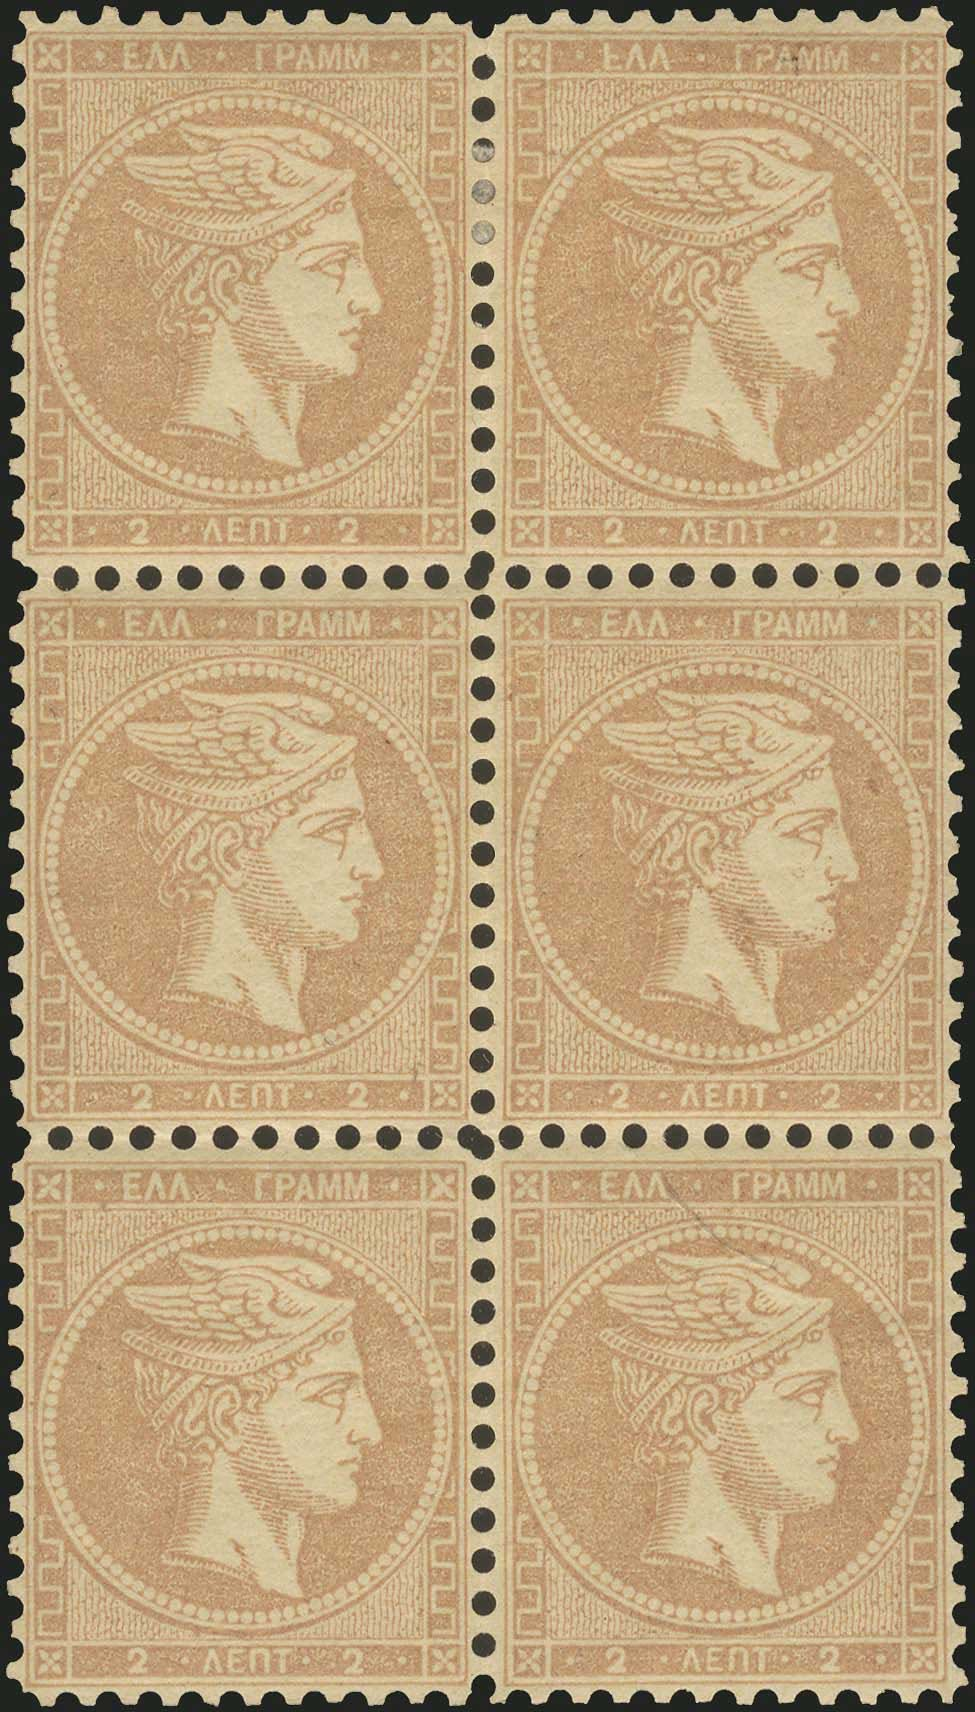 Lot 62 - -  LARGE HERMES HEAD 1862/67 consecutive athens printings -  A. Karamitsos Public Auction 637 General Stamp Sale